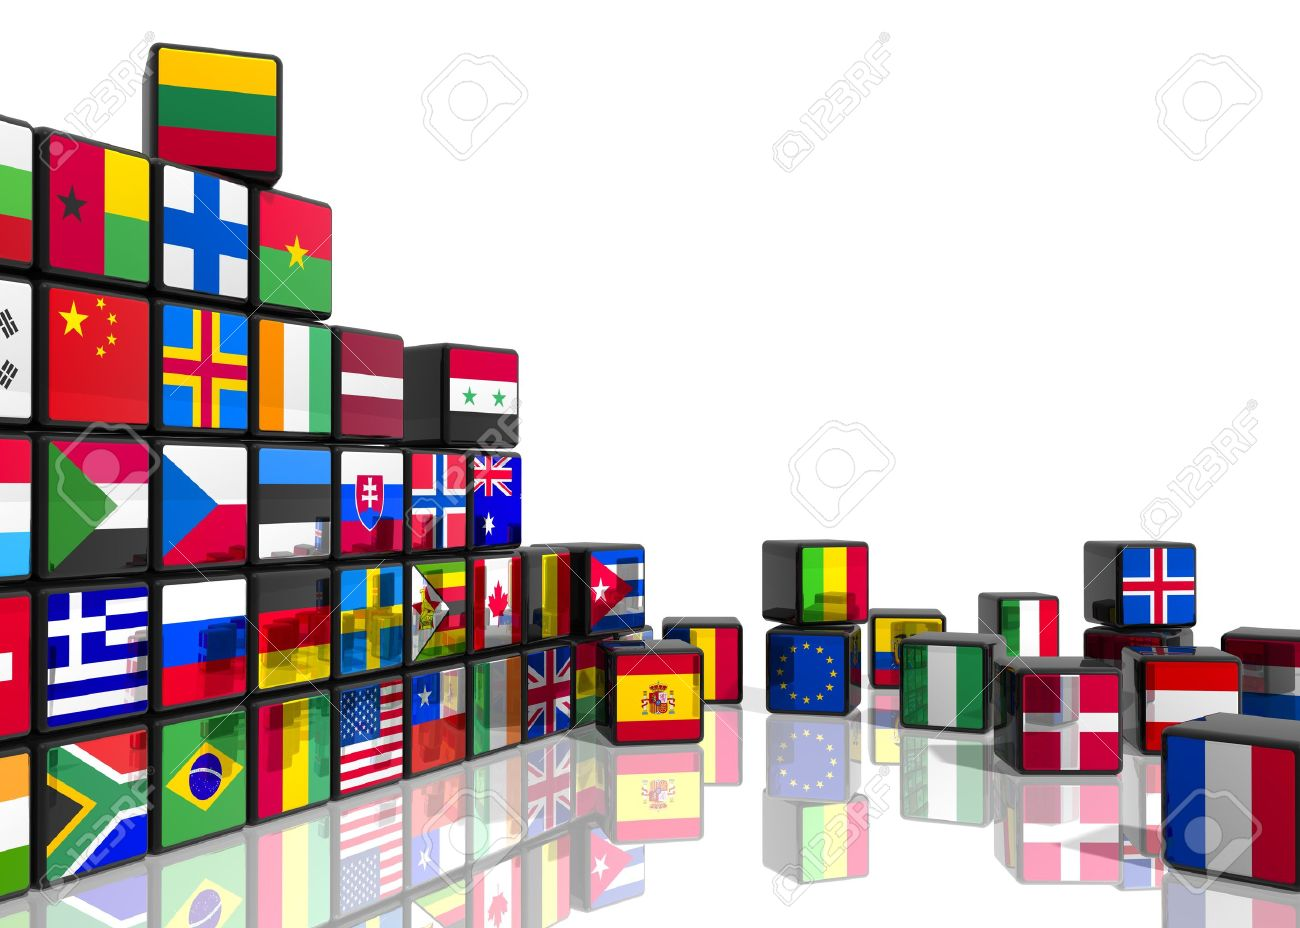 Travel and world flags concept: collage from cubes with colorful flags isolated on white reflective background Stock Photo - 10942102